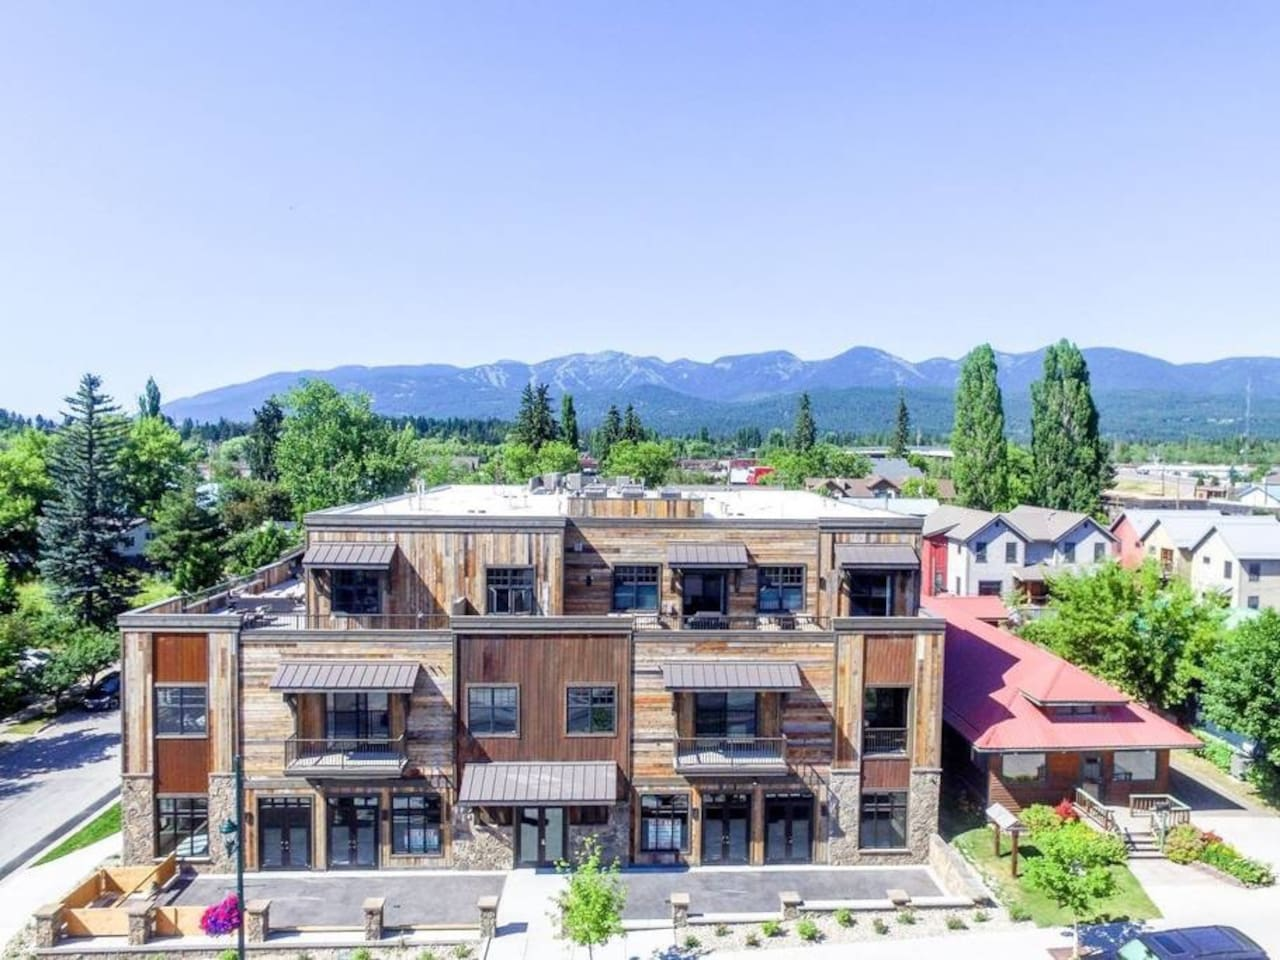 Conveniently located in downtown Whitefish, only a short distance to Whitefish Lake, Whitefish Mountain Resort, or Glacier National Park!